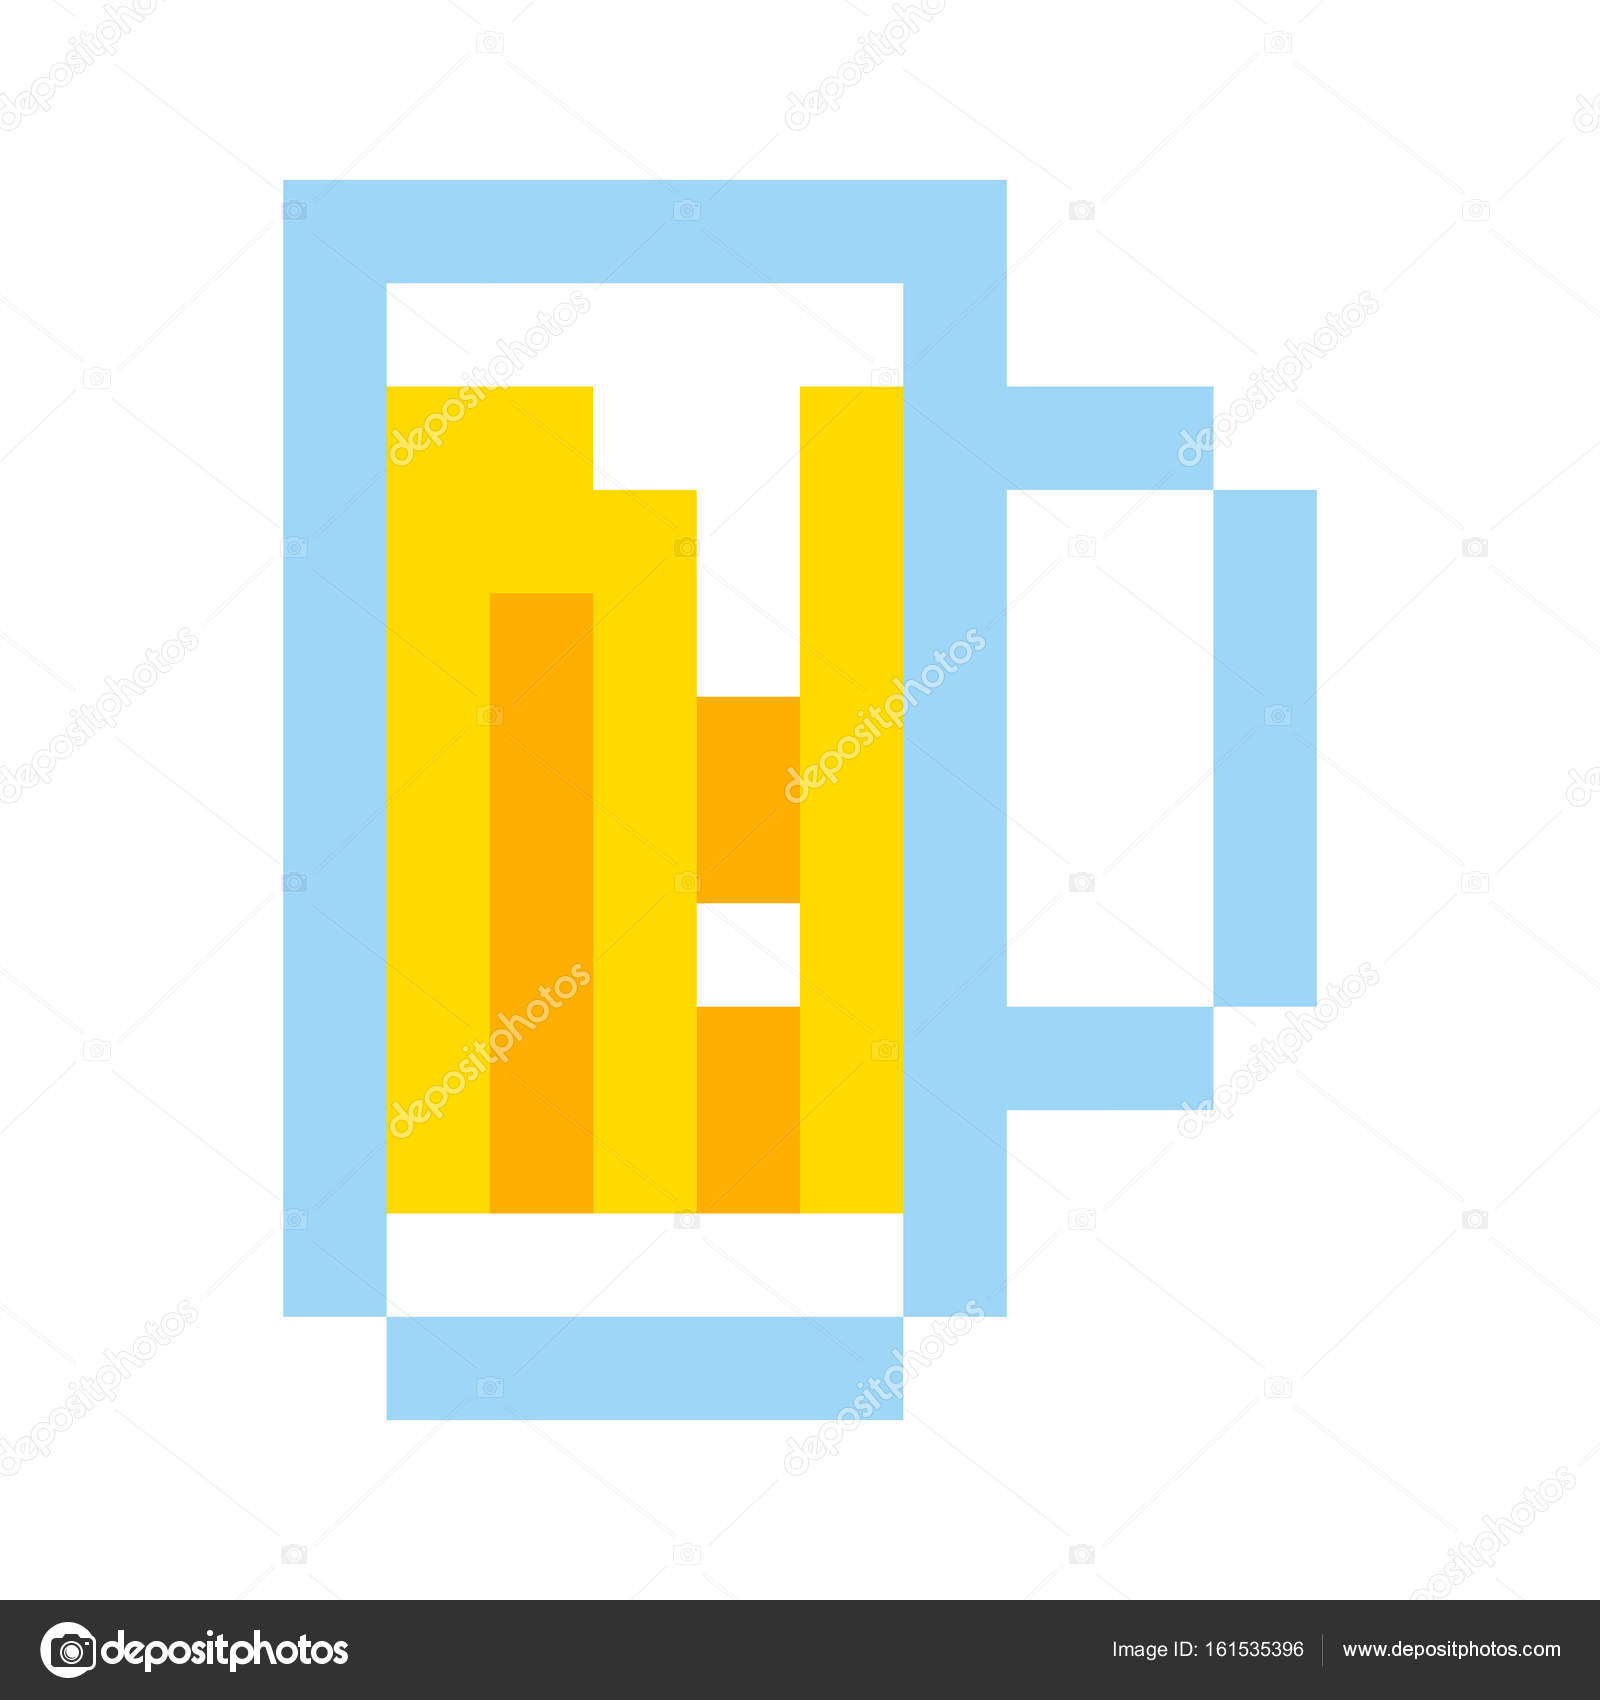 Aldi stock symbol choice image symbol and sign ideas safeway stock symbol image collections symbol and sign ideas aldi stock symbol gallery symbol and sign buycottarizona